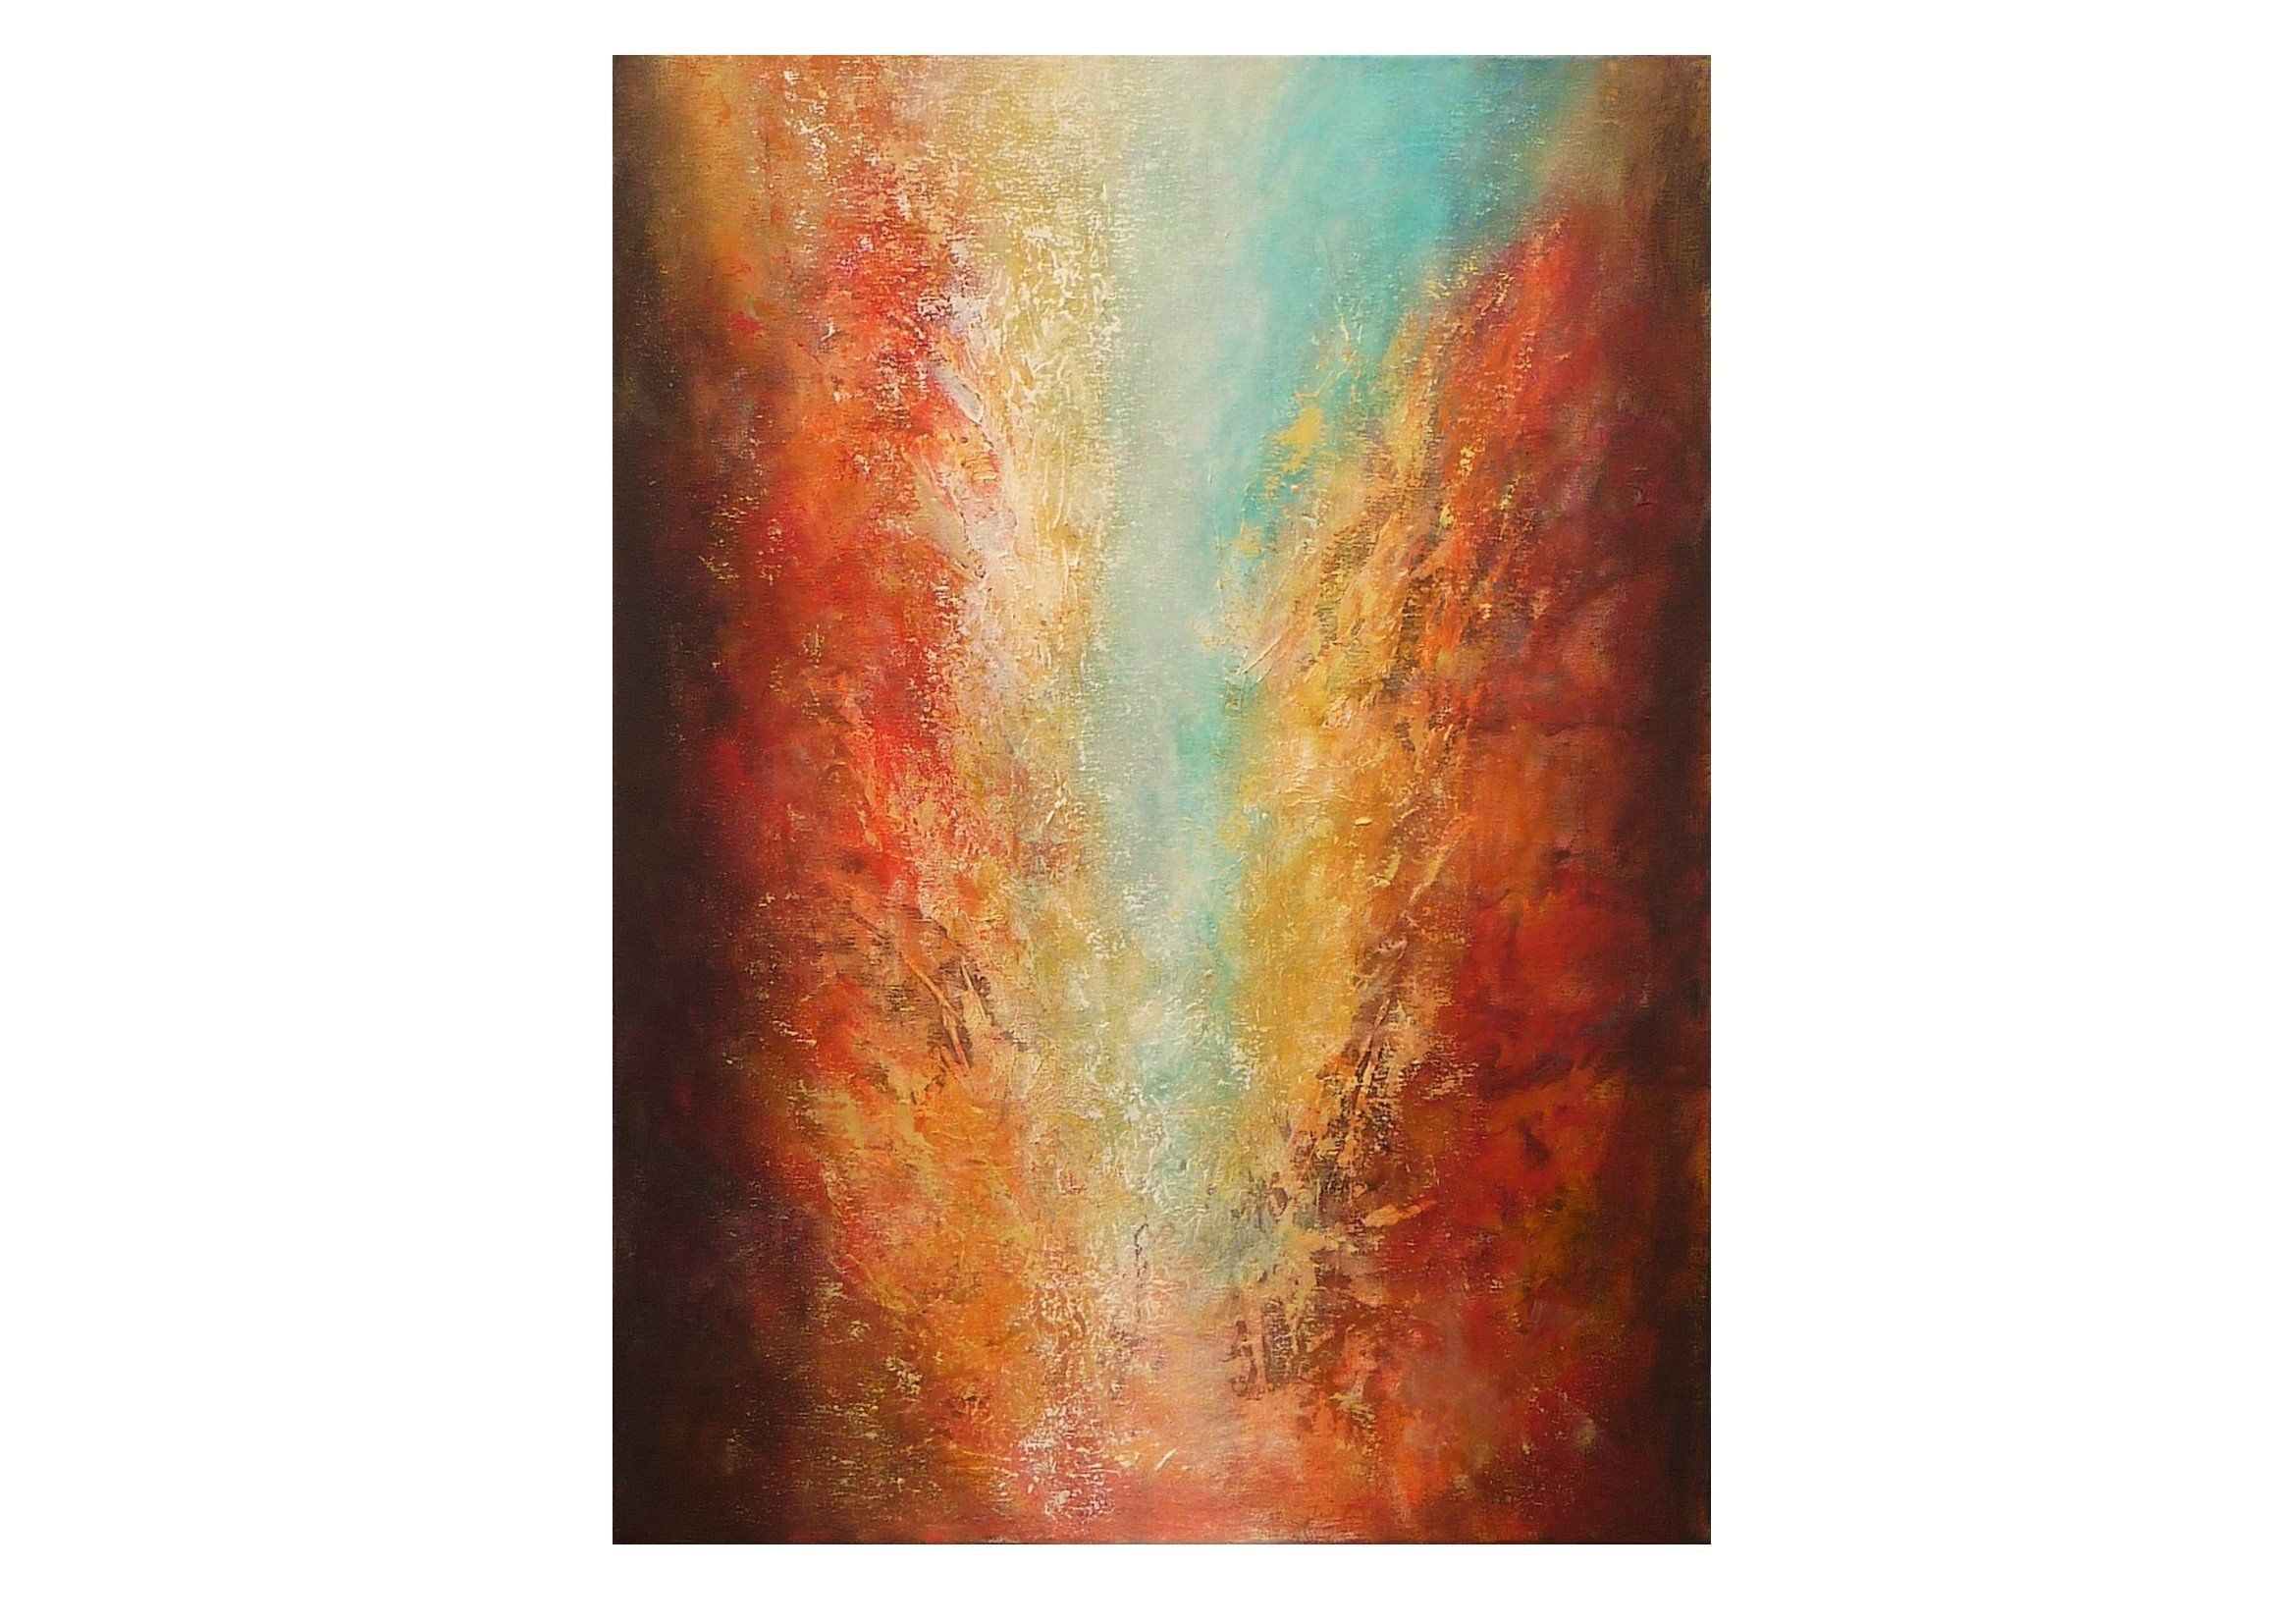 Tableau Moderne Vertical Tableau Abstrait Vertical Orange Rouge Jaune Bleu Original Texture